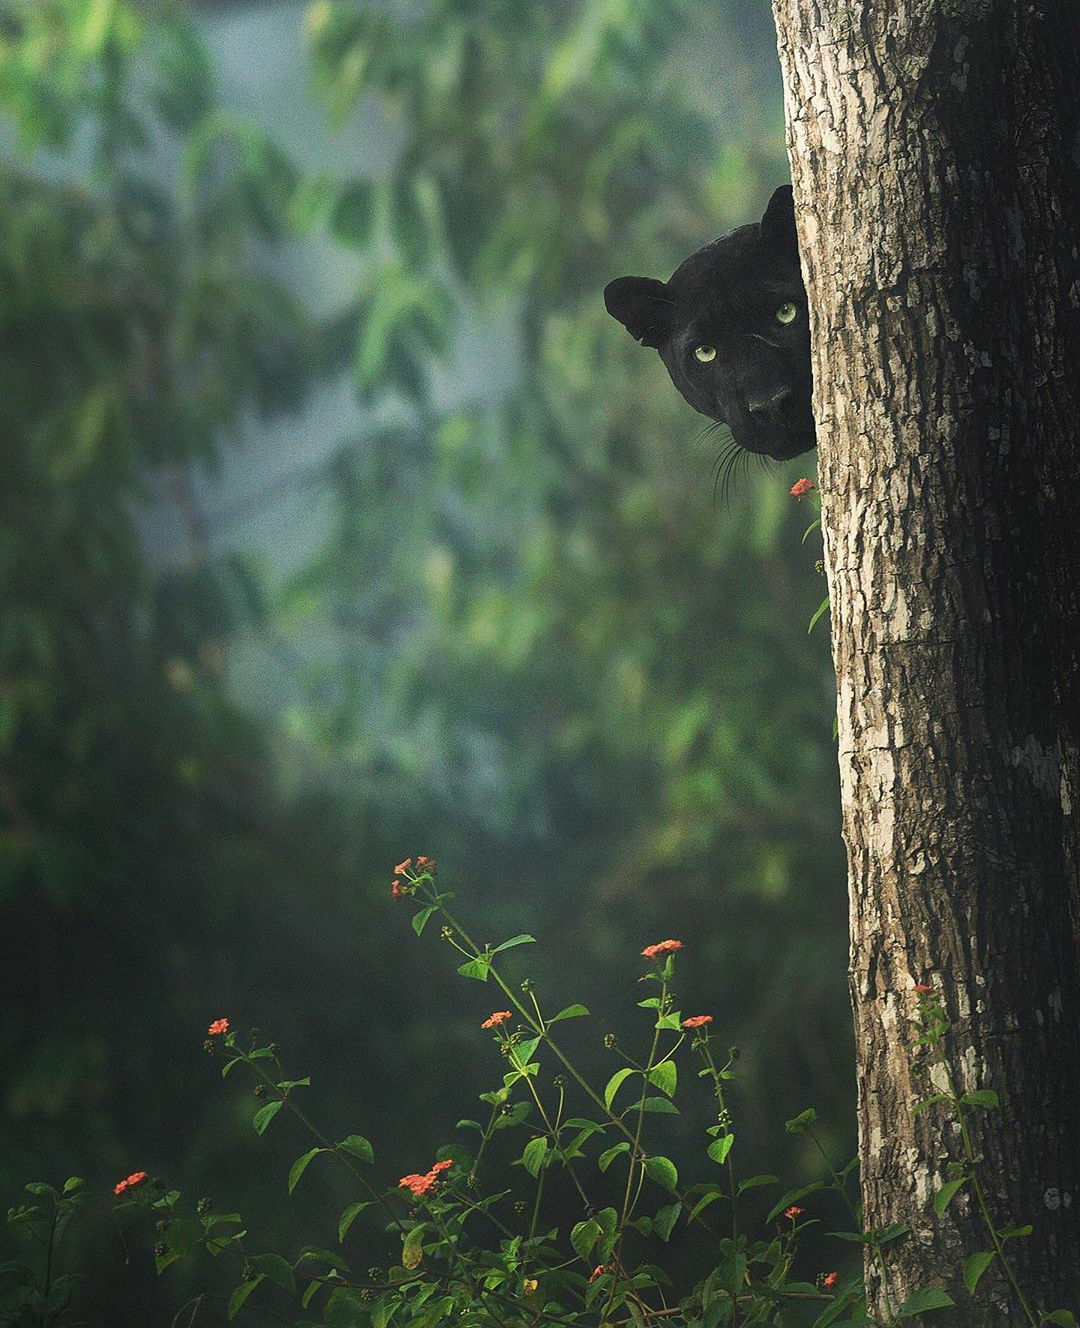 A cautious black panther in Nagarhole National Park, India